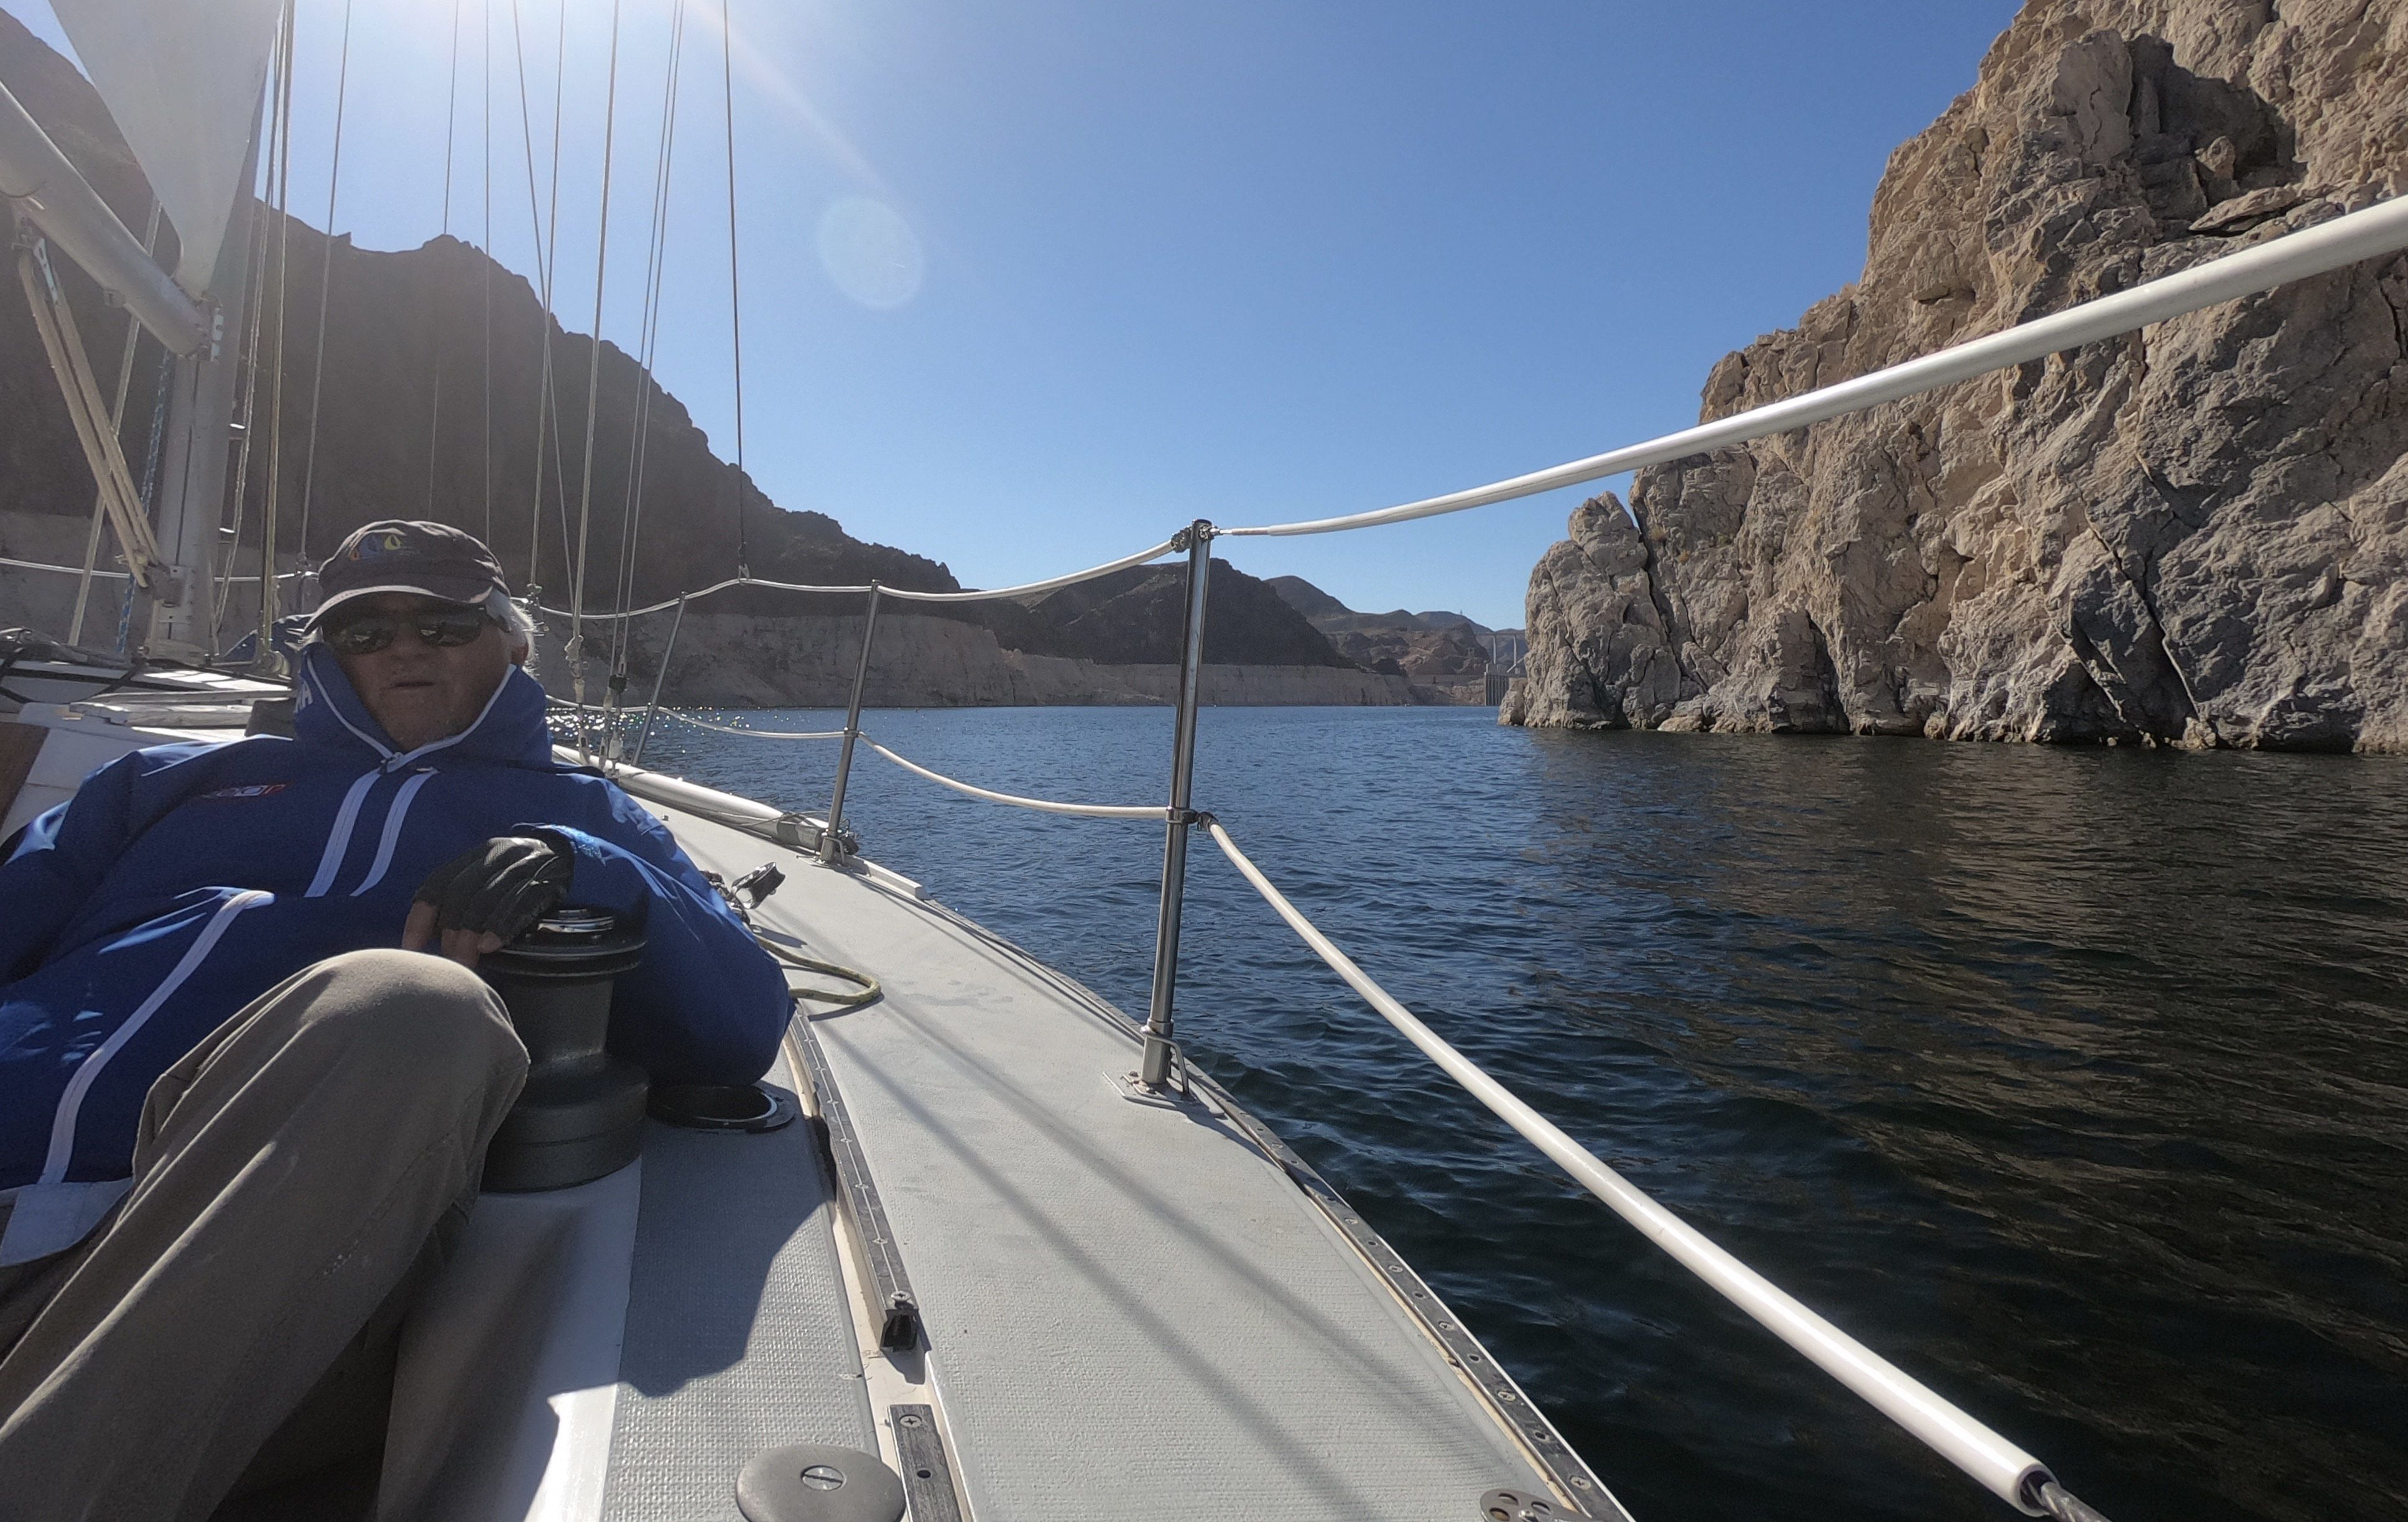 Jim Rosachi, owner of the Capri 30 Blue By You, provides a guided tour of Nevada's Lake Mead.